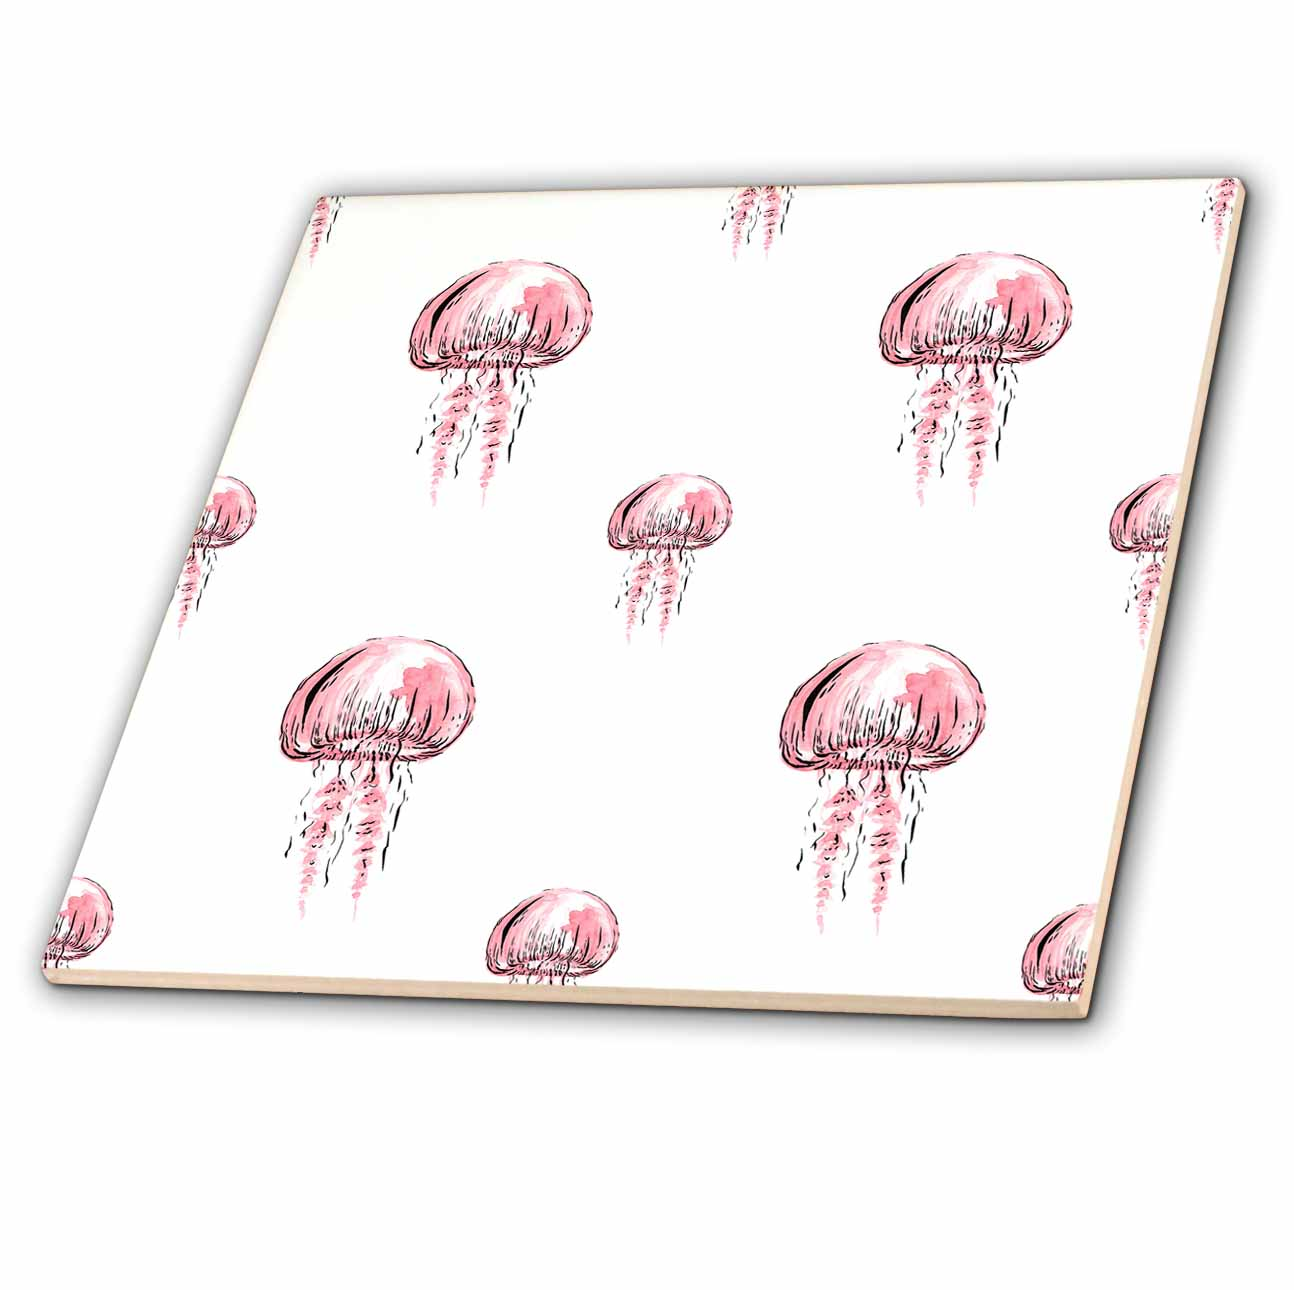 3dRose Pretty Pink Jelly Fish Pattern - Ceramic Tile, 4-inch